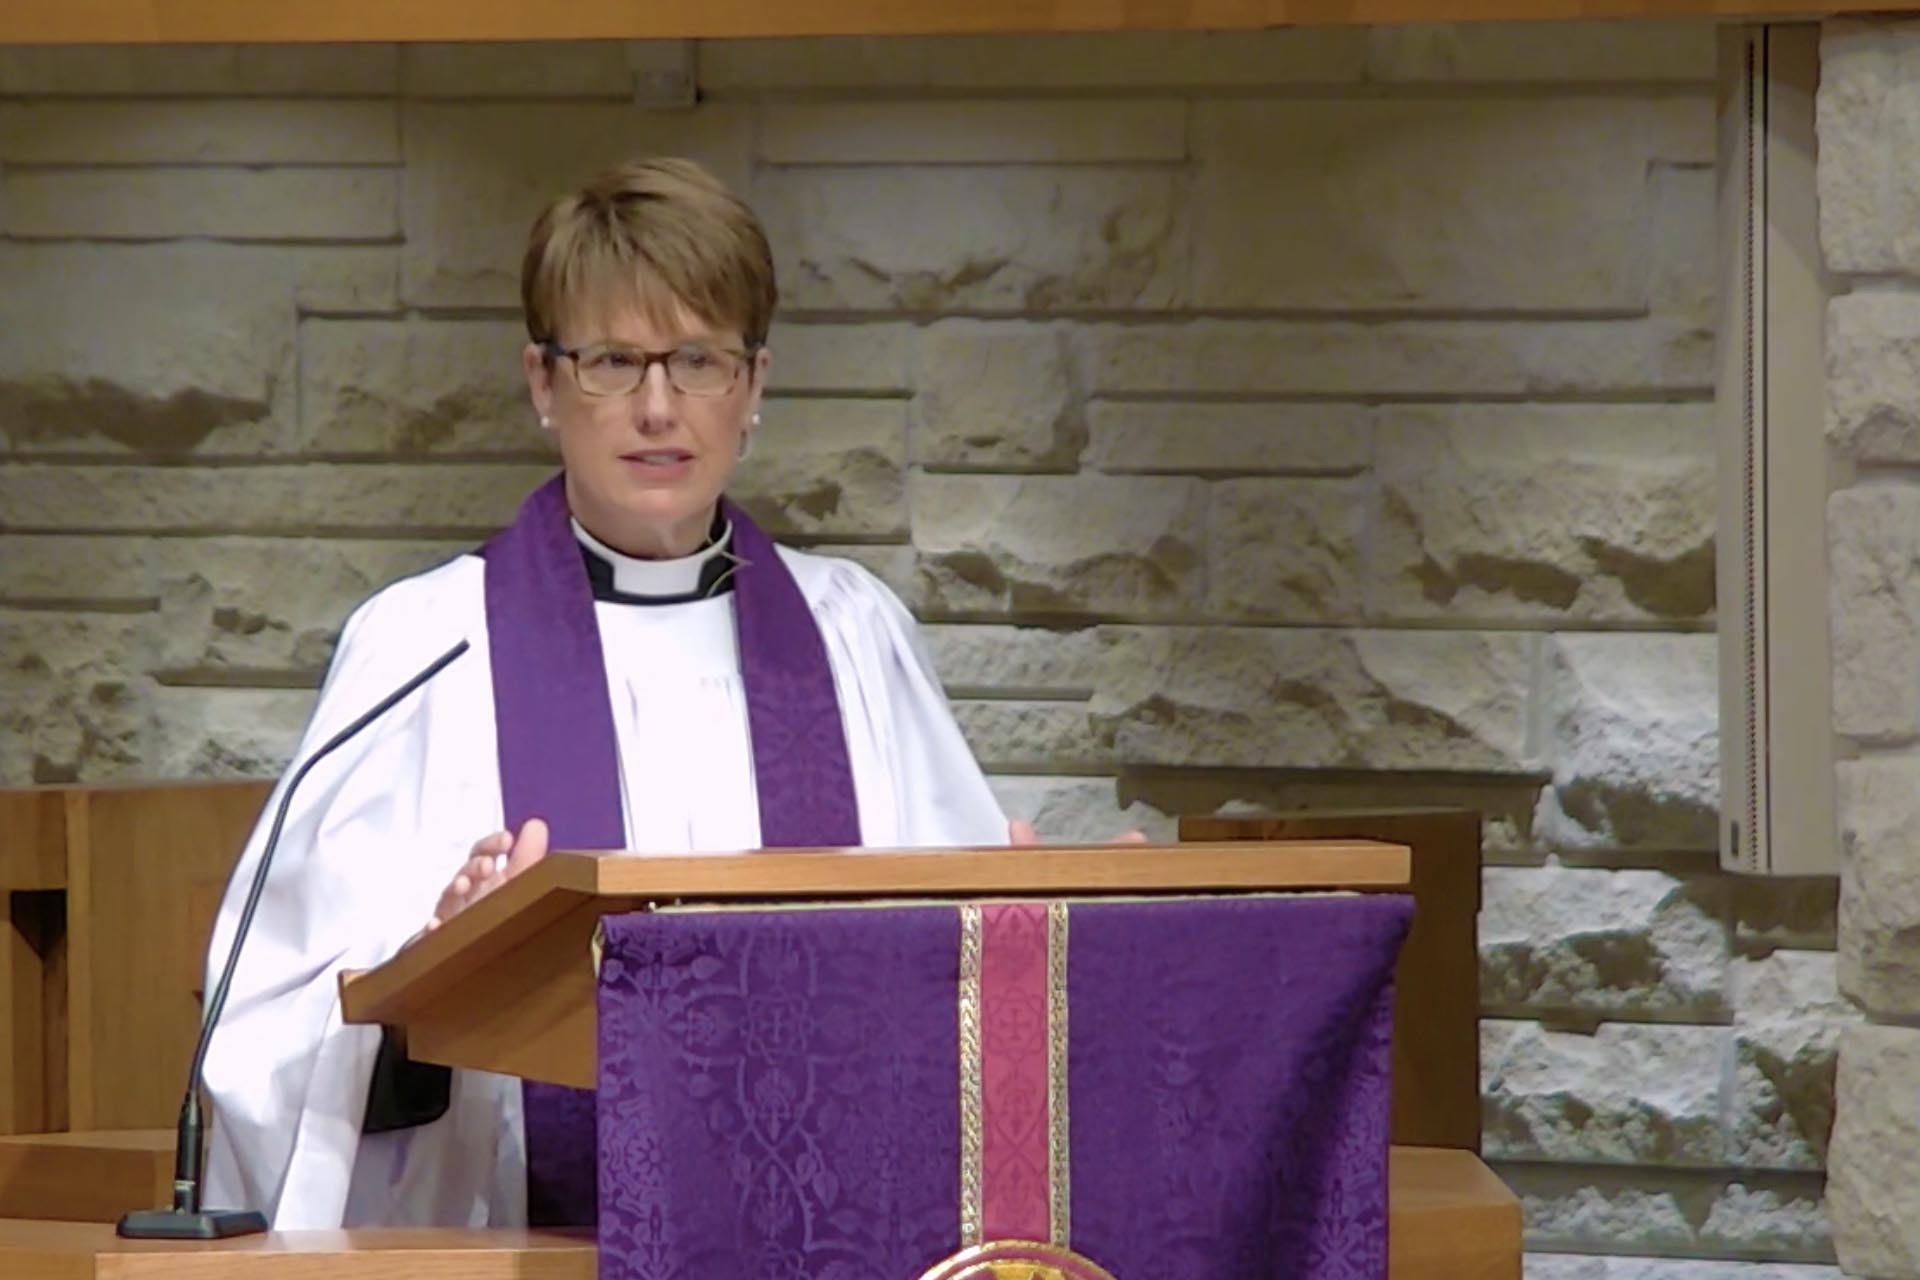 Thirst - Sermon by the Rev. Louise Samuelson